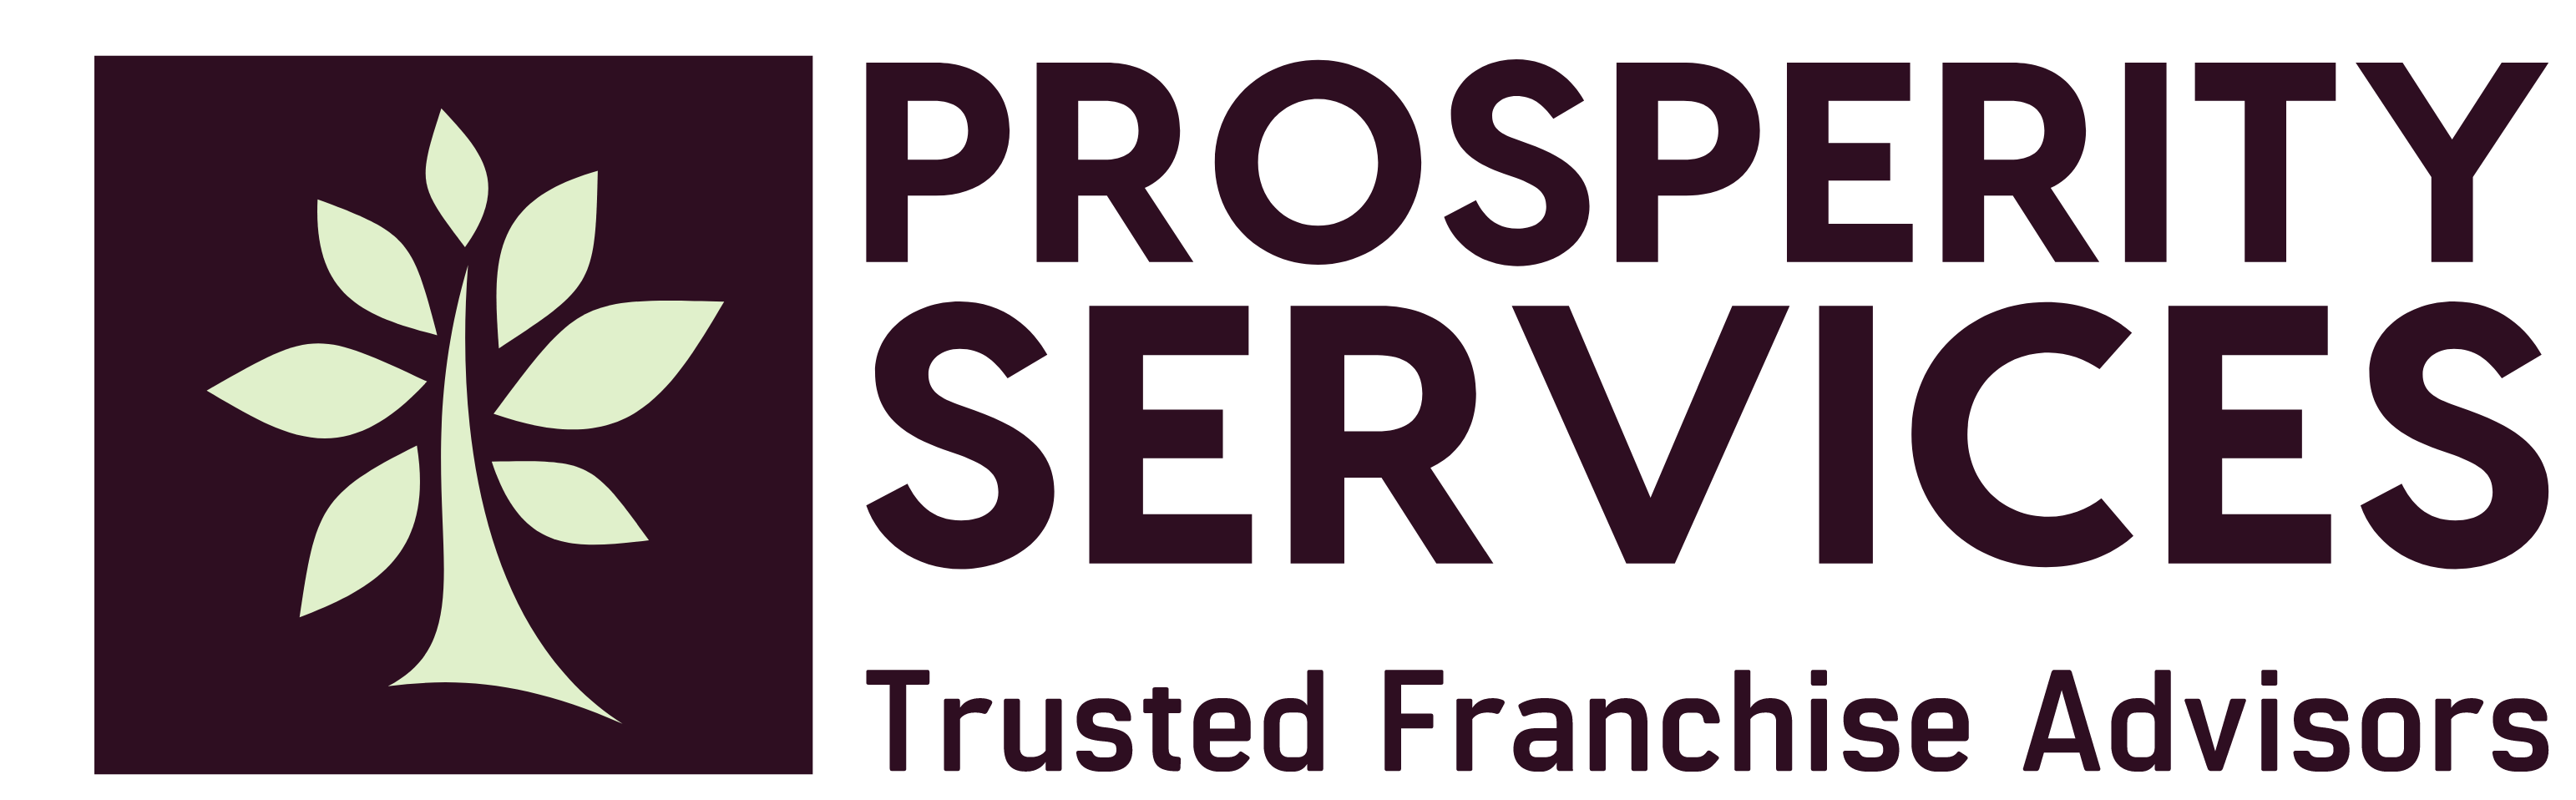 Trusted Franchise Advisors